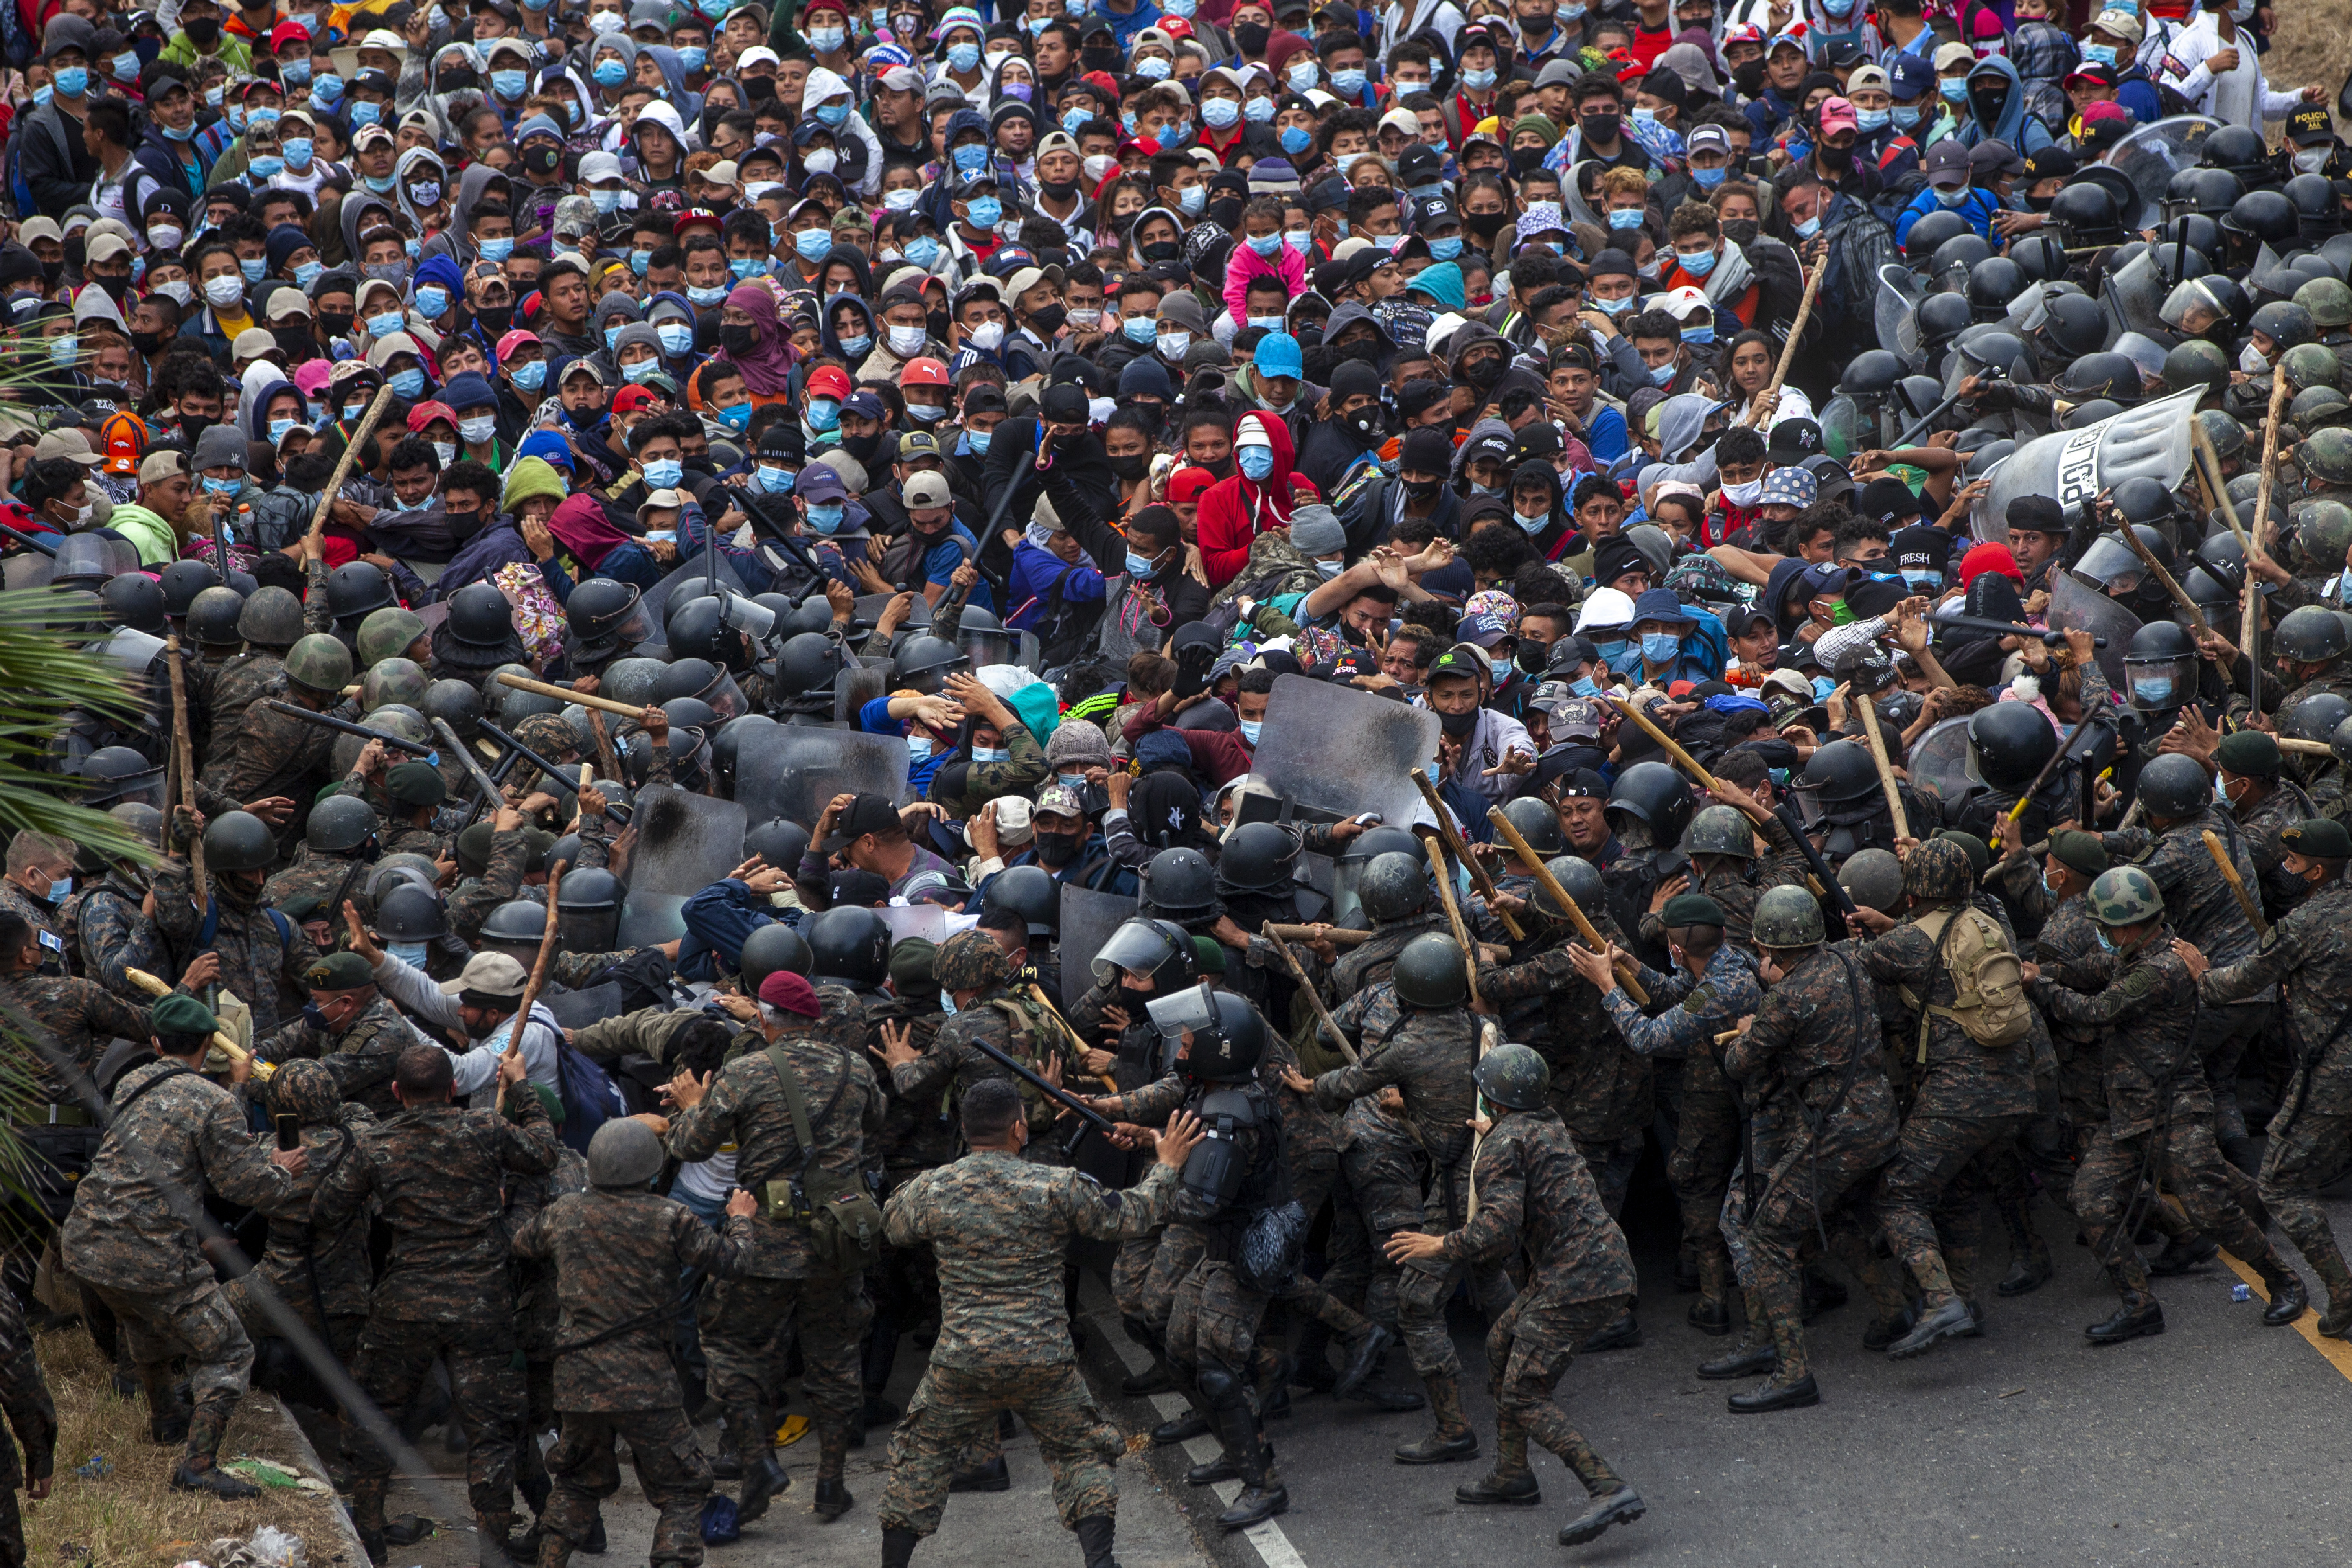 Honduran migrants clash with Guatemalan soldiers in Vado Hondo, Guatemala, Sunday, Jan. 17, 2021. Guatemalan authorities estimated that as many as 9,000 Honduran migrants crossed into Guatemala as part of an effort to form a new caravan to reach the U.S. border.